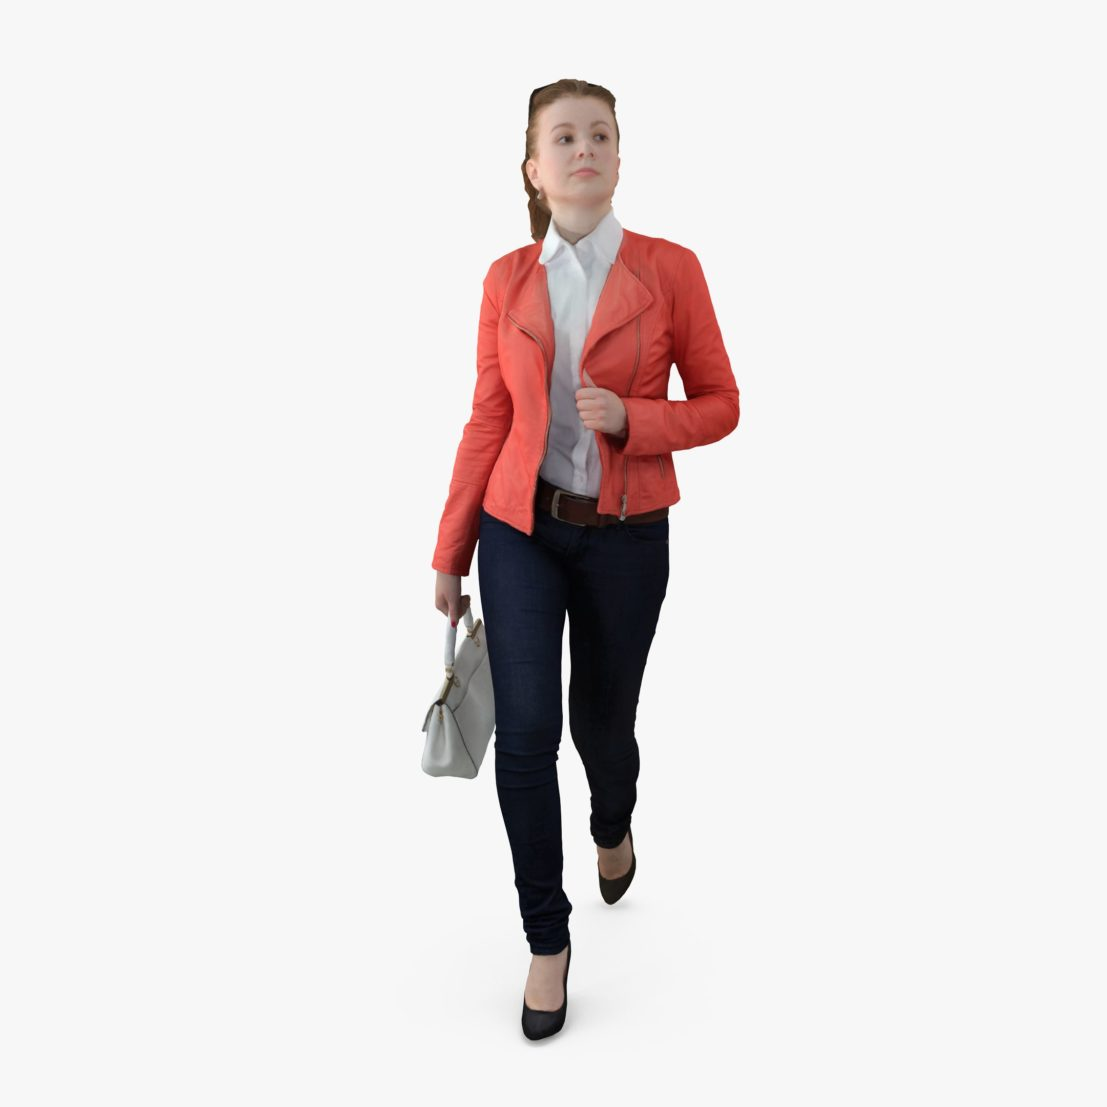 City Female Walking 3D Model | 3DTree Scanning Studio